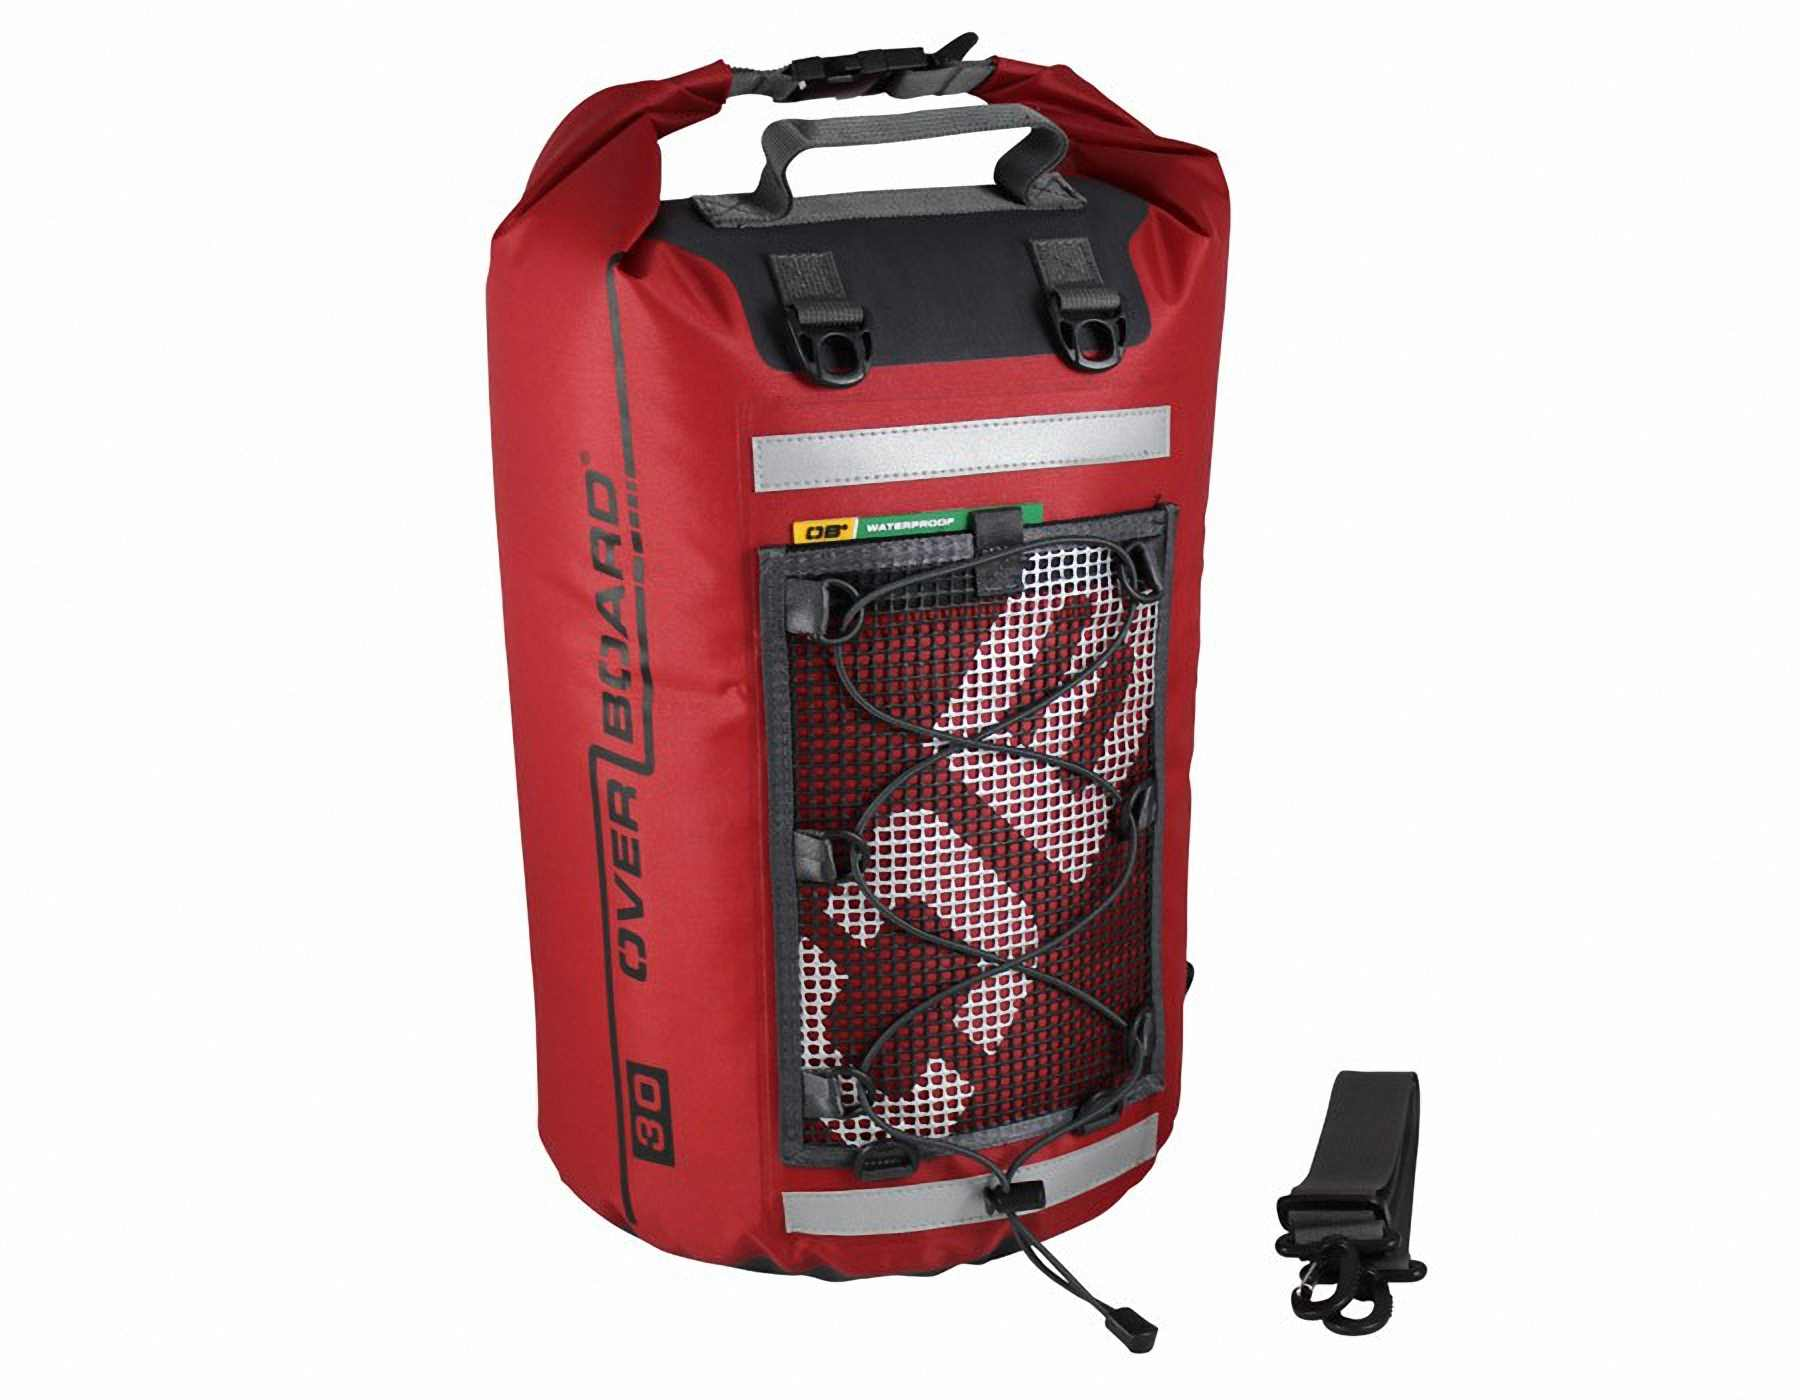 Водонепроницаемая сумка OverBoard OB1118R - Ultra-light Dry Tube Bag - 30L (Red) Фото 1